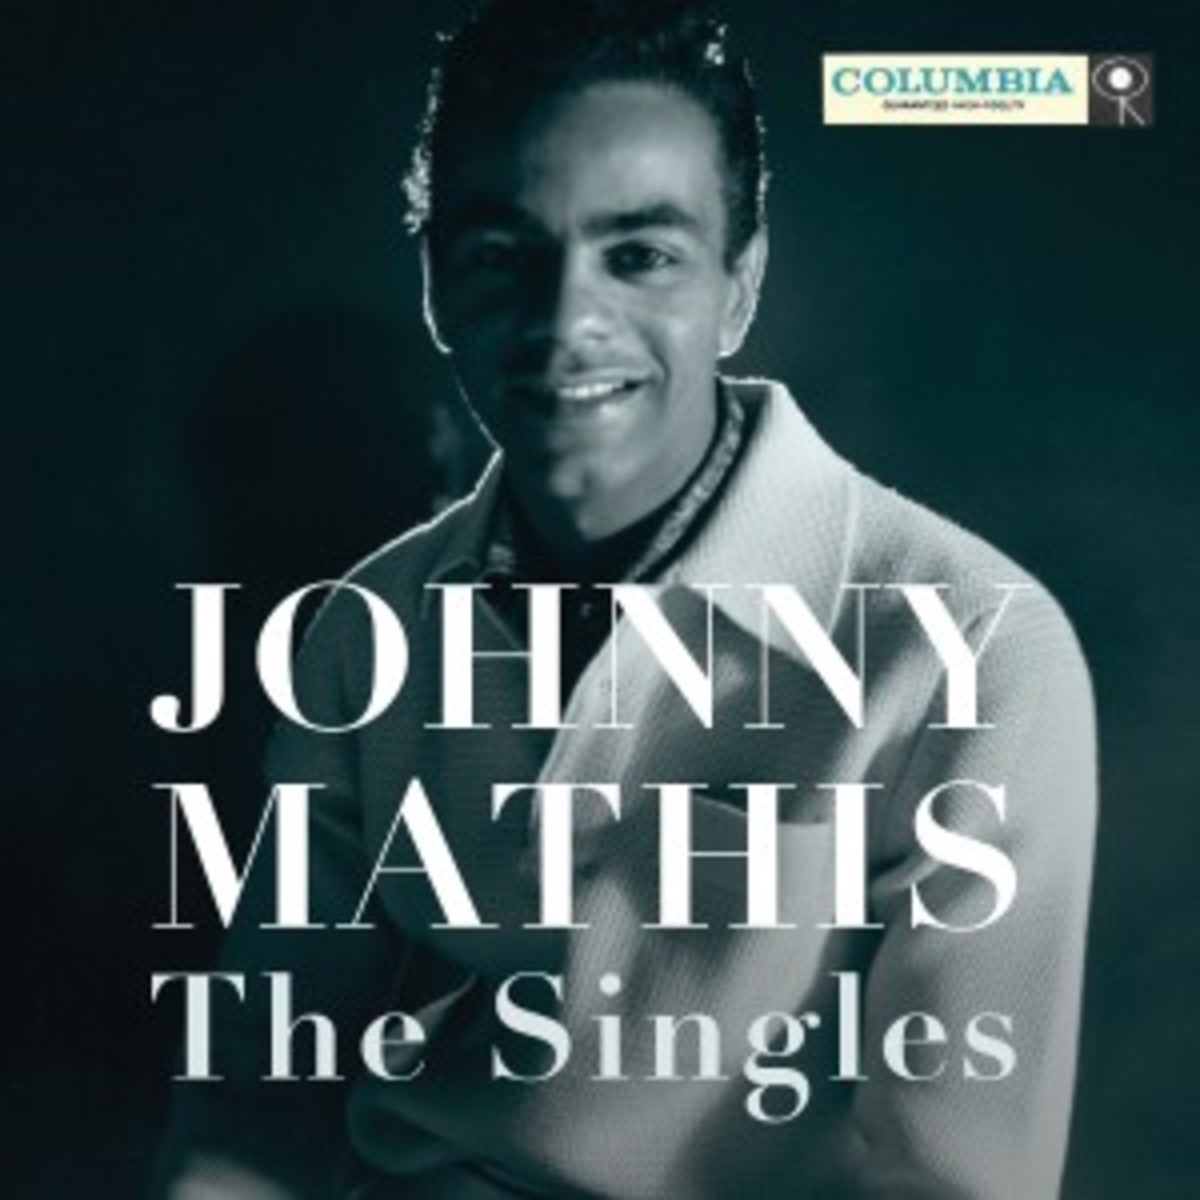 johnny mathis final